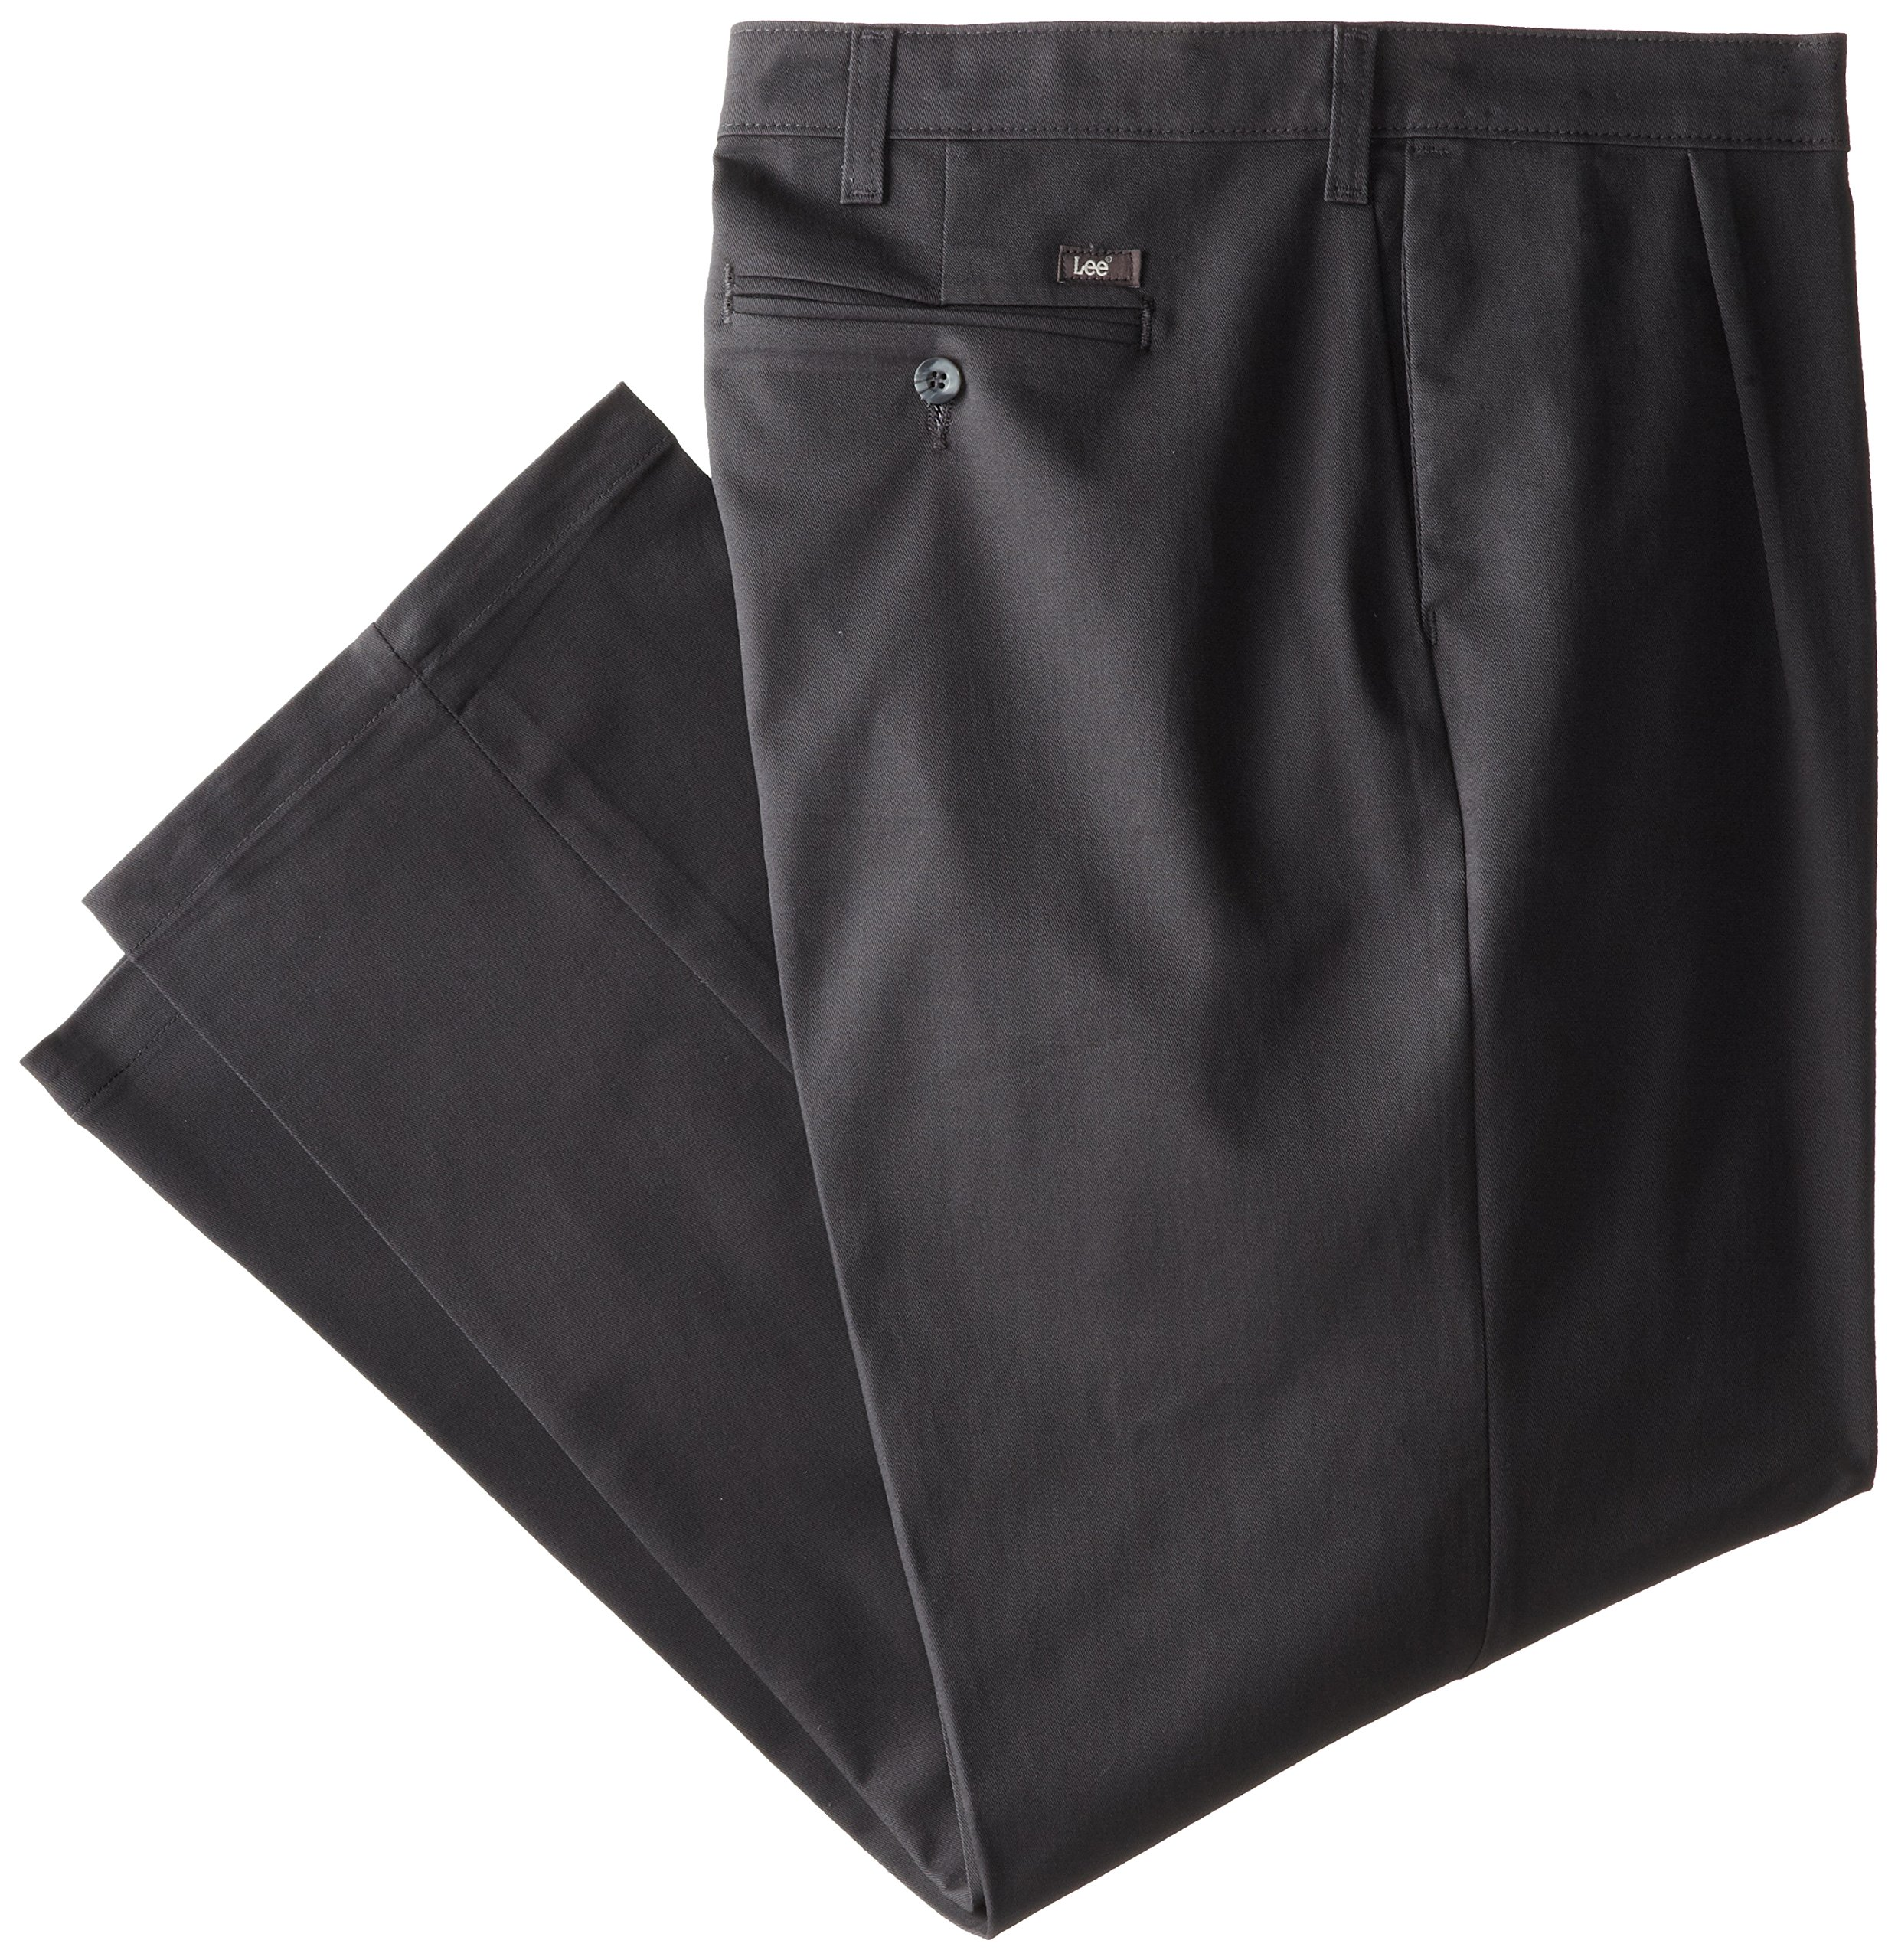 Lee Men's Big-Tall Comfort Waist Custom Fit Pleated Pant, Charcoal, 54W x 32L by LEE